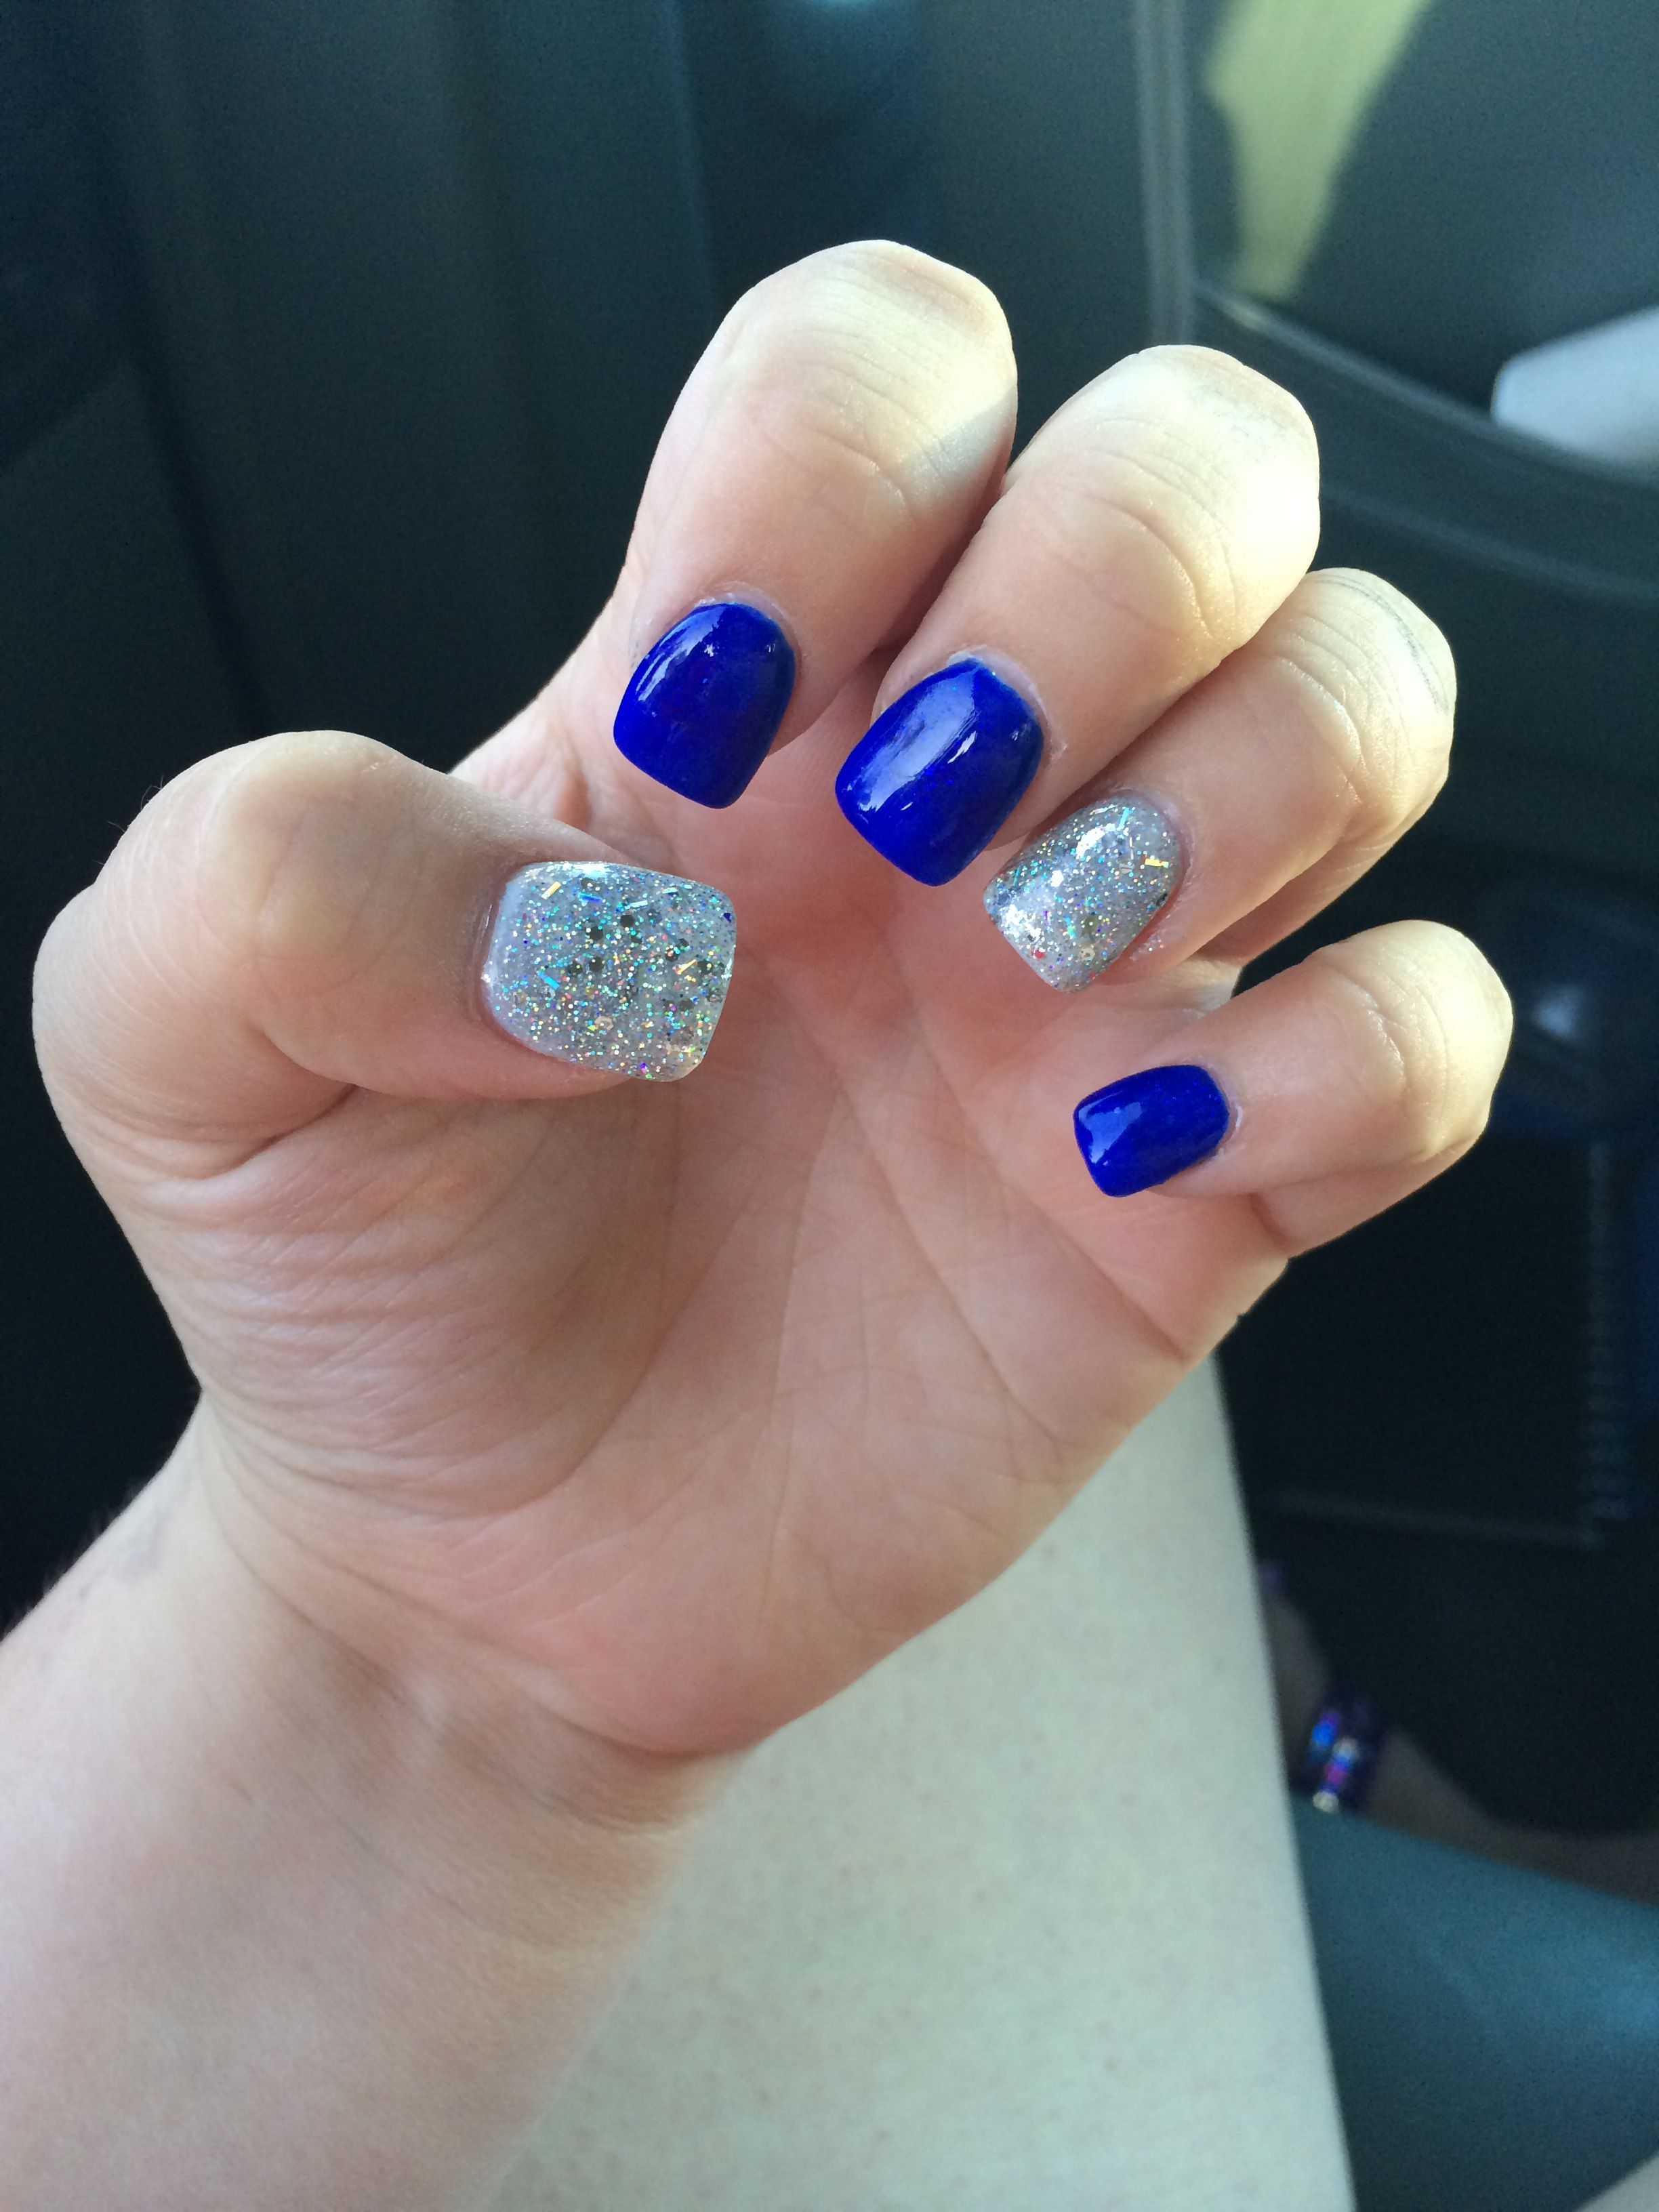 Royal Blue With Silver Glitter Nails Blue Shellac Nails Blue And Silver Nails Blue Glitter Nails